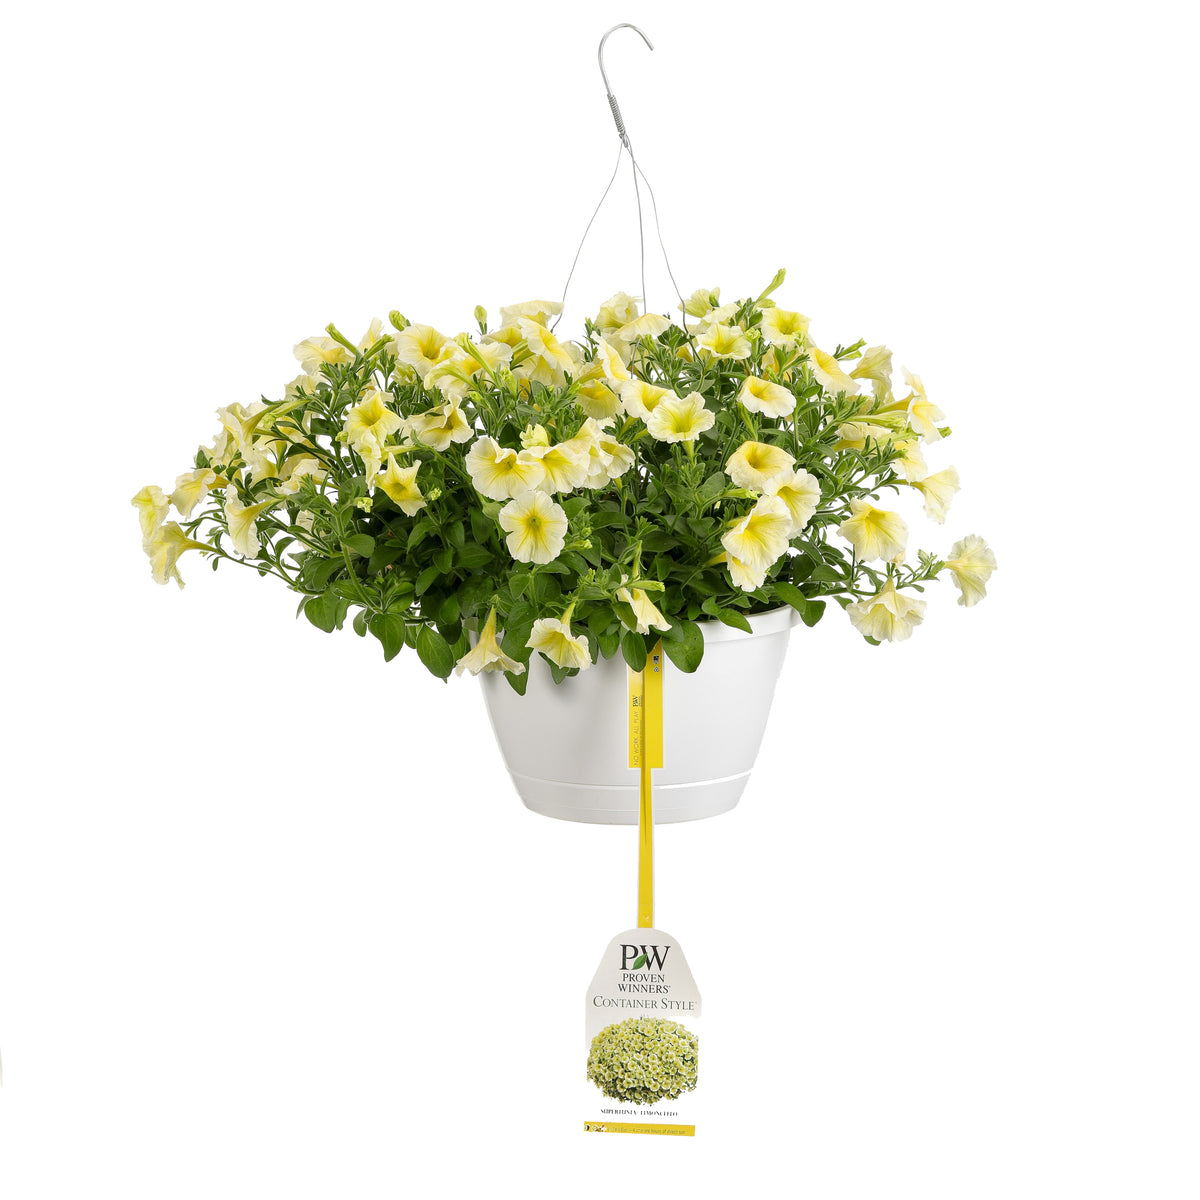 Patio Plants|Petunia - Supertunia Limoncello Mono Hanging Basket 1